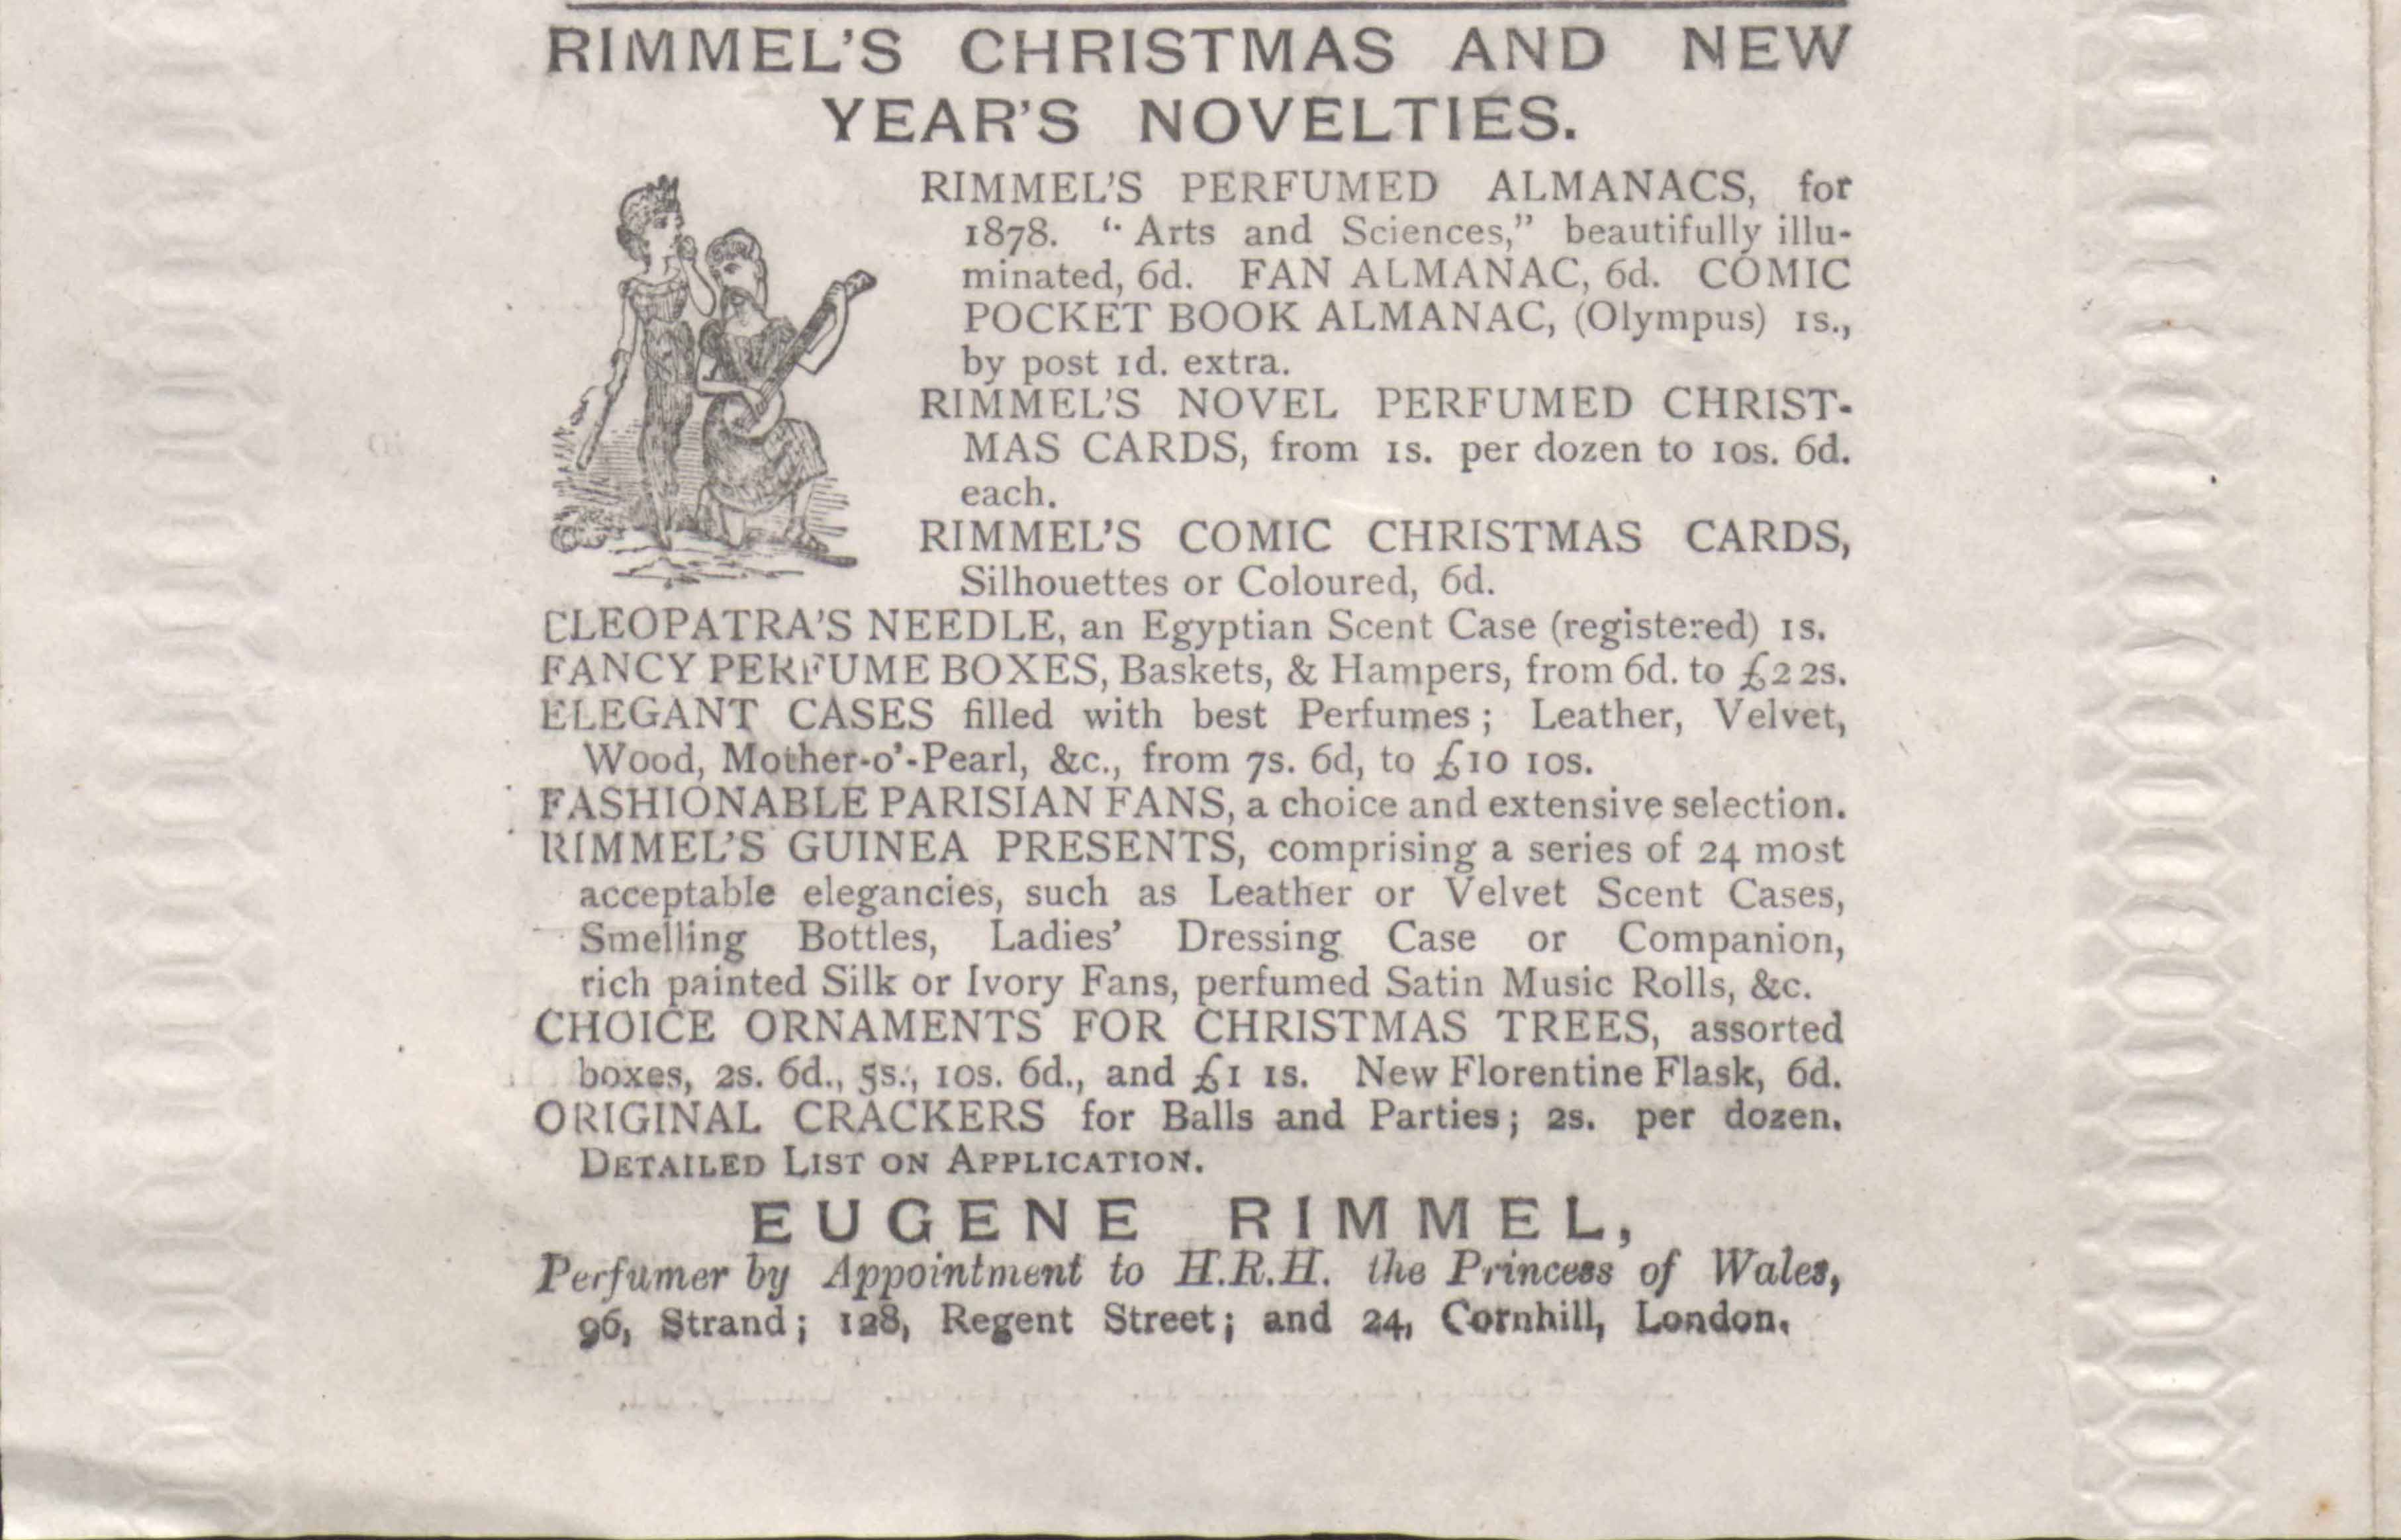 Rimmel advertisement from theatre programme, 26 November 1877